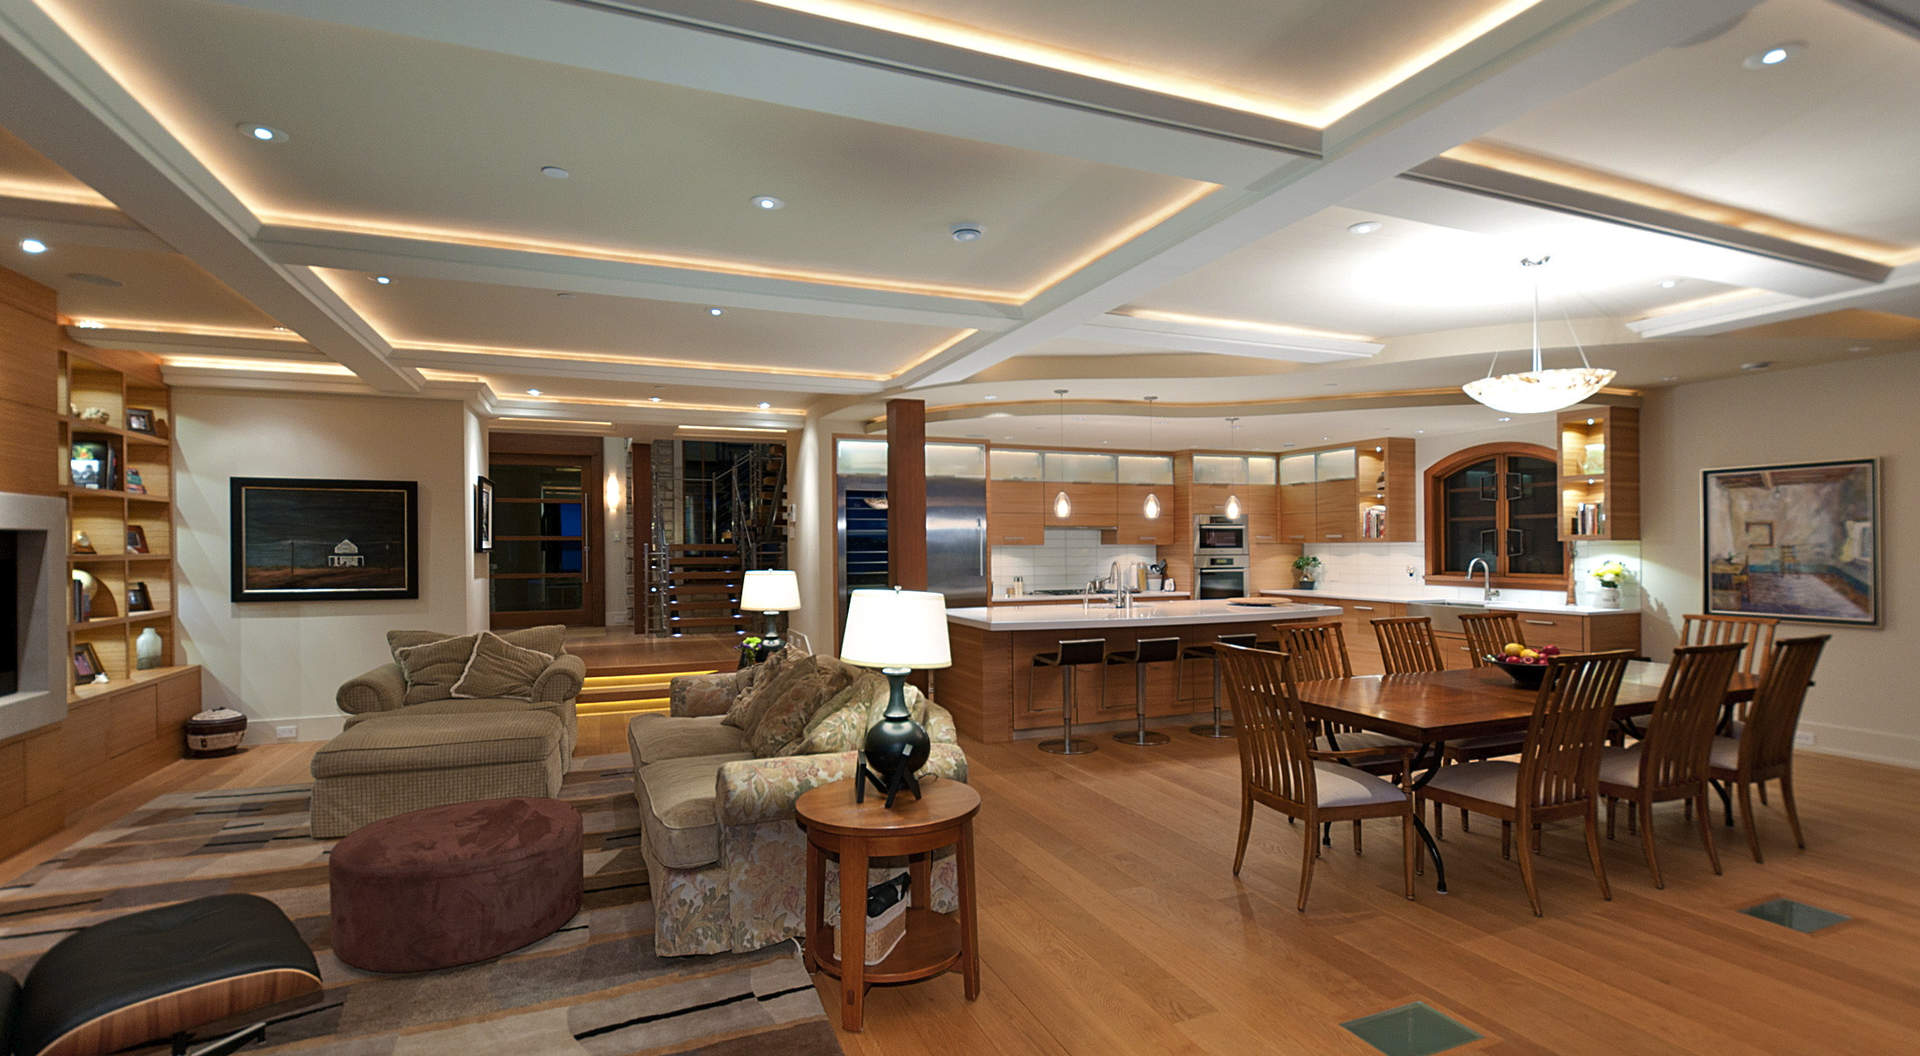 A Goregous Open Plan of Living